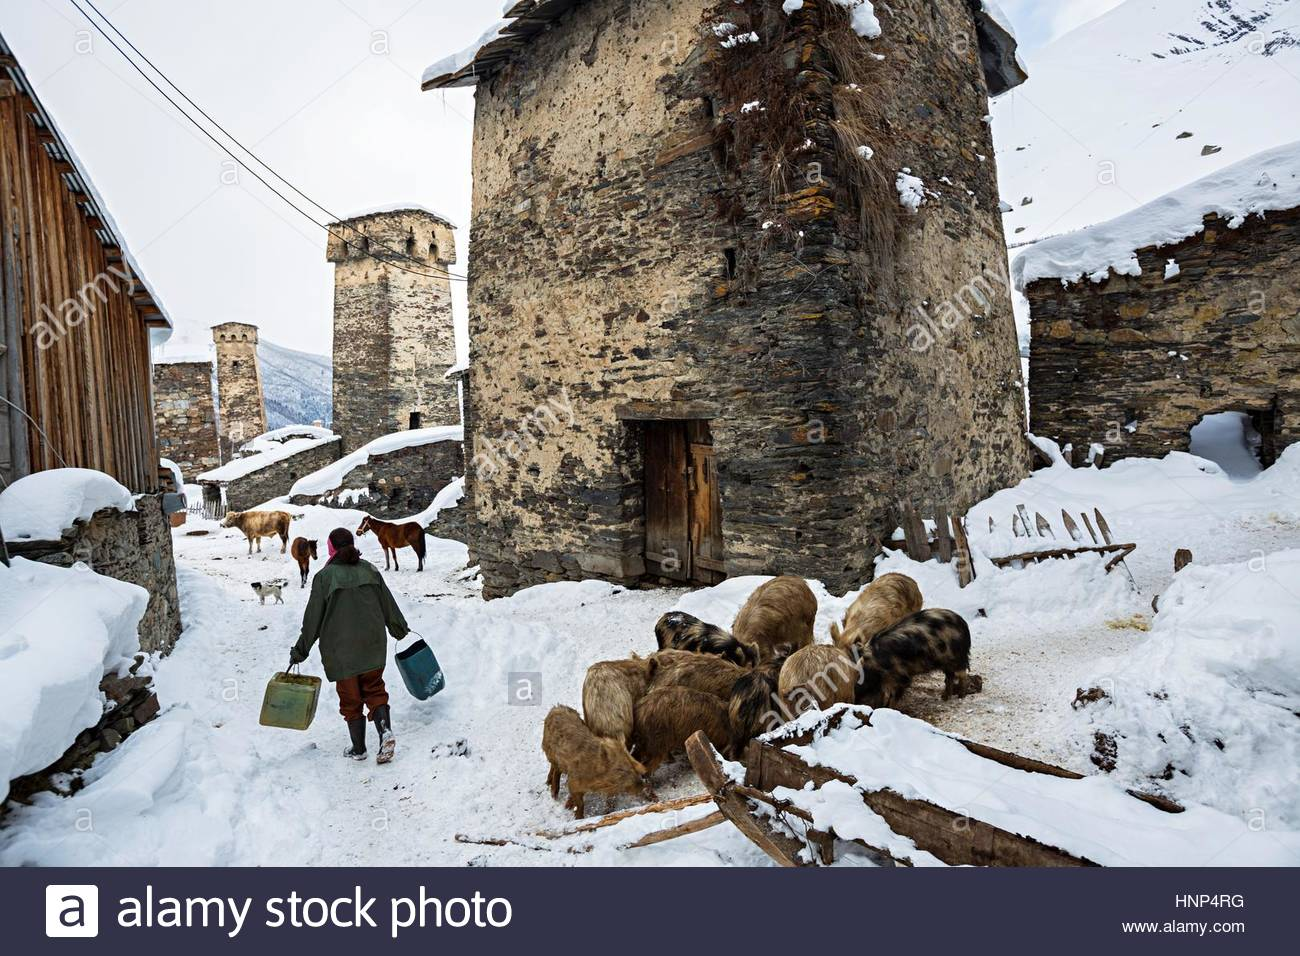 Centuries old towers are used to store hay and grain for livestock. Stock Photo